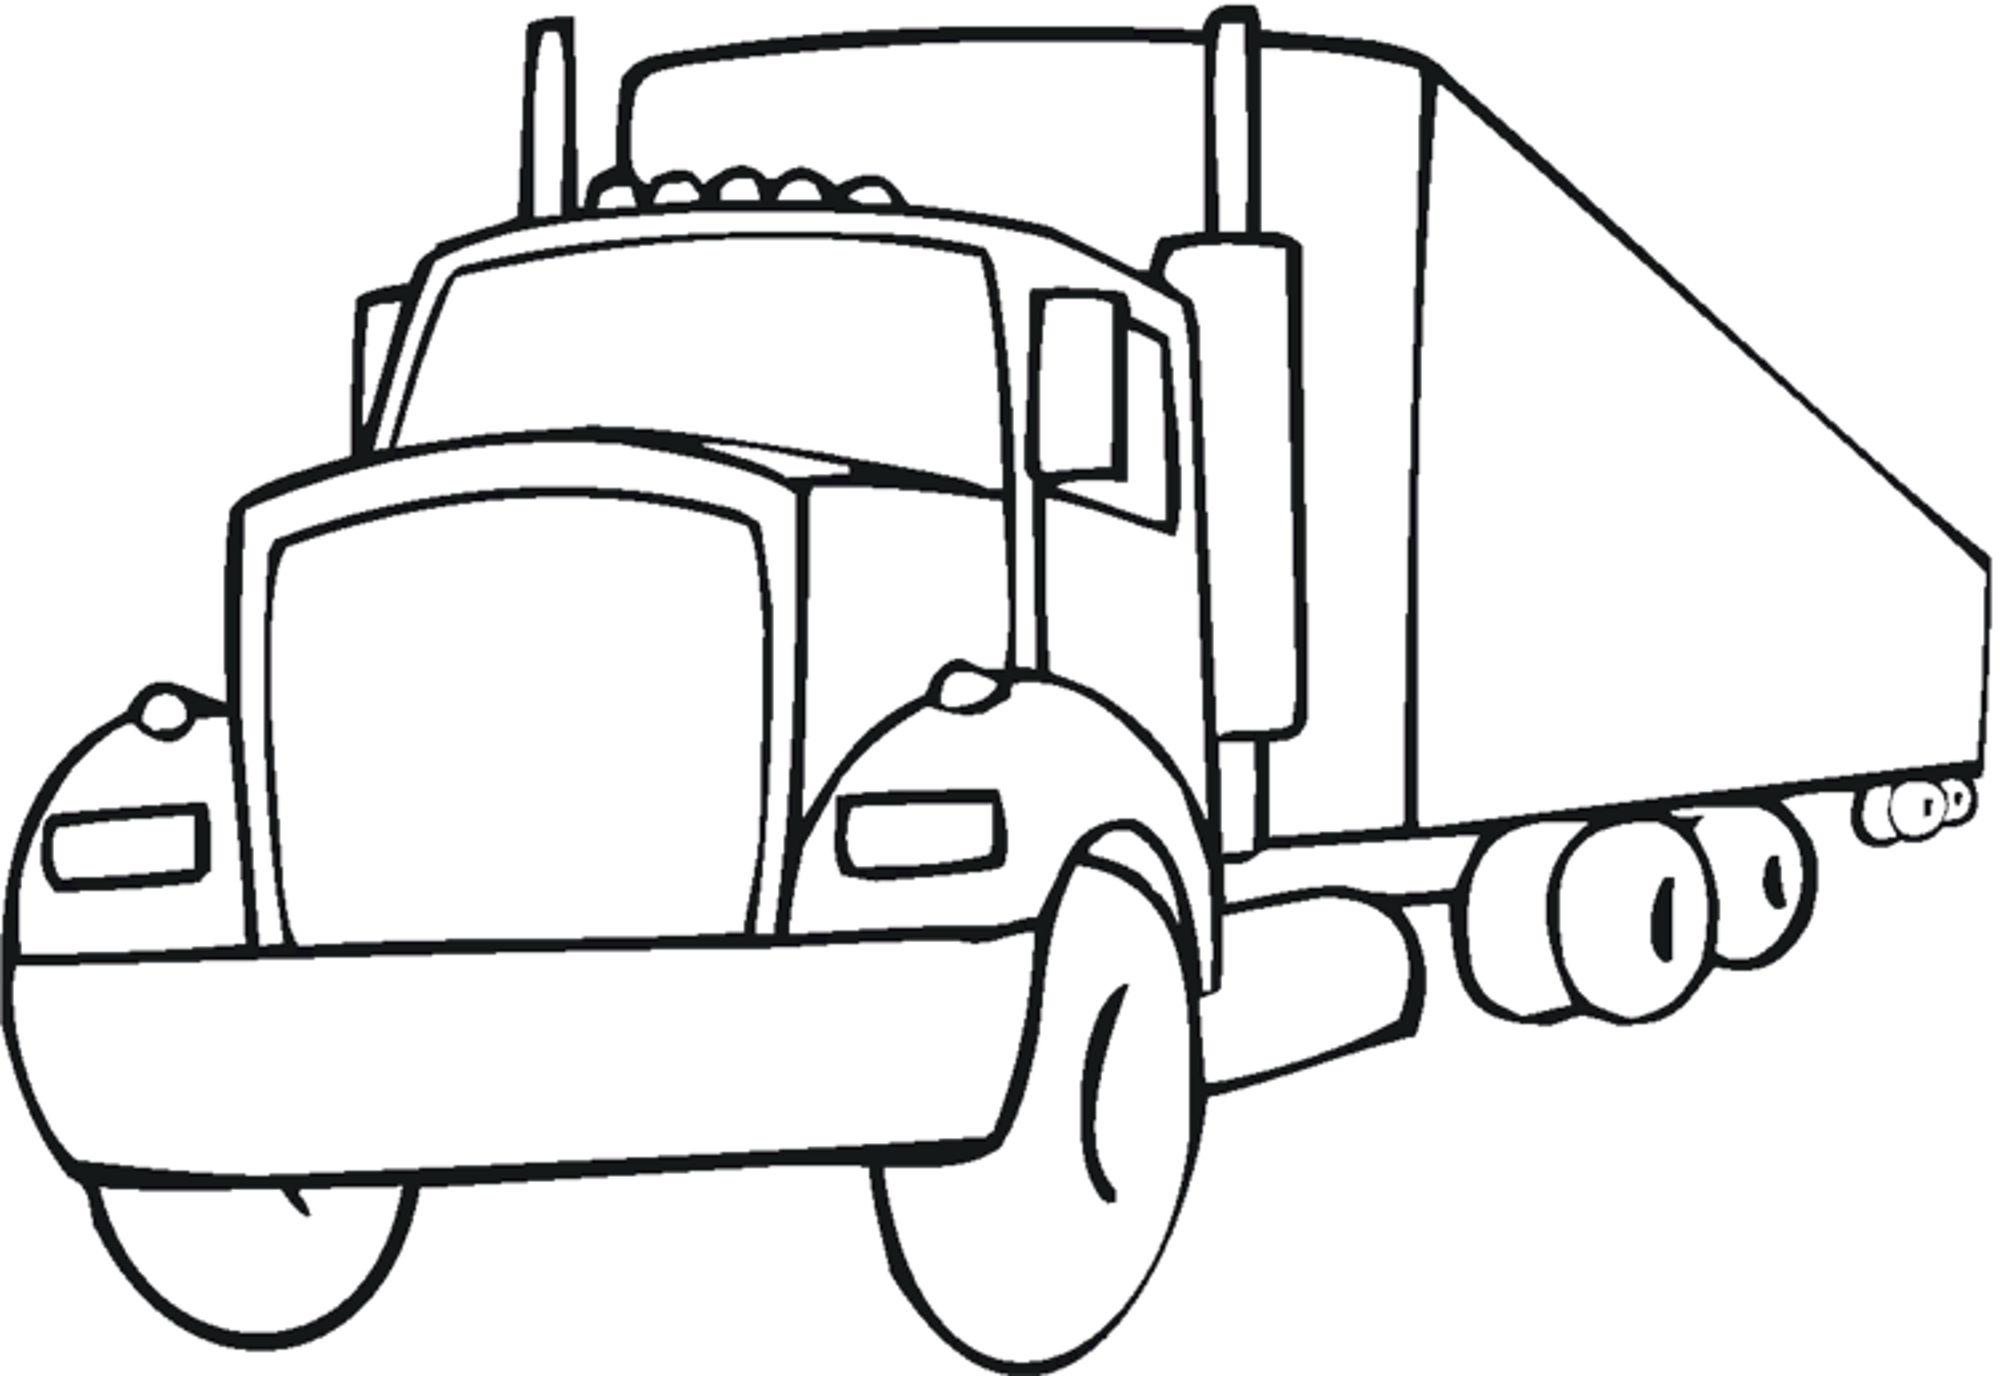 2000x1376 Simple Truck Coloring Pages Simple Colorings